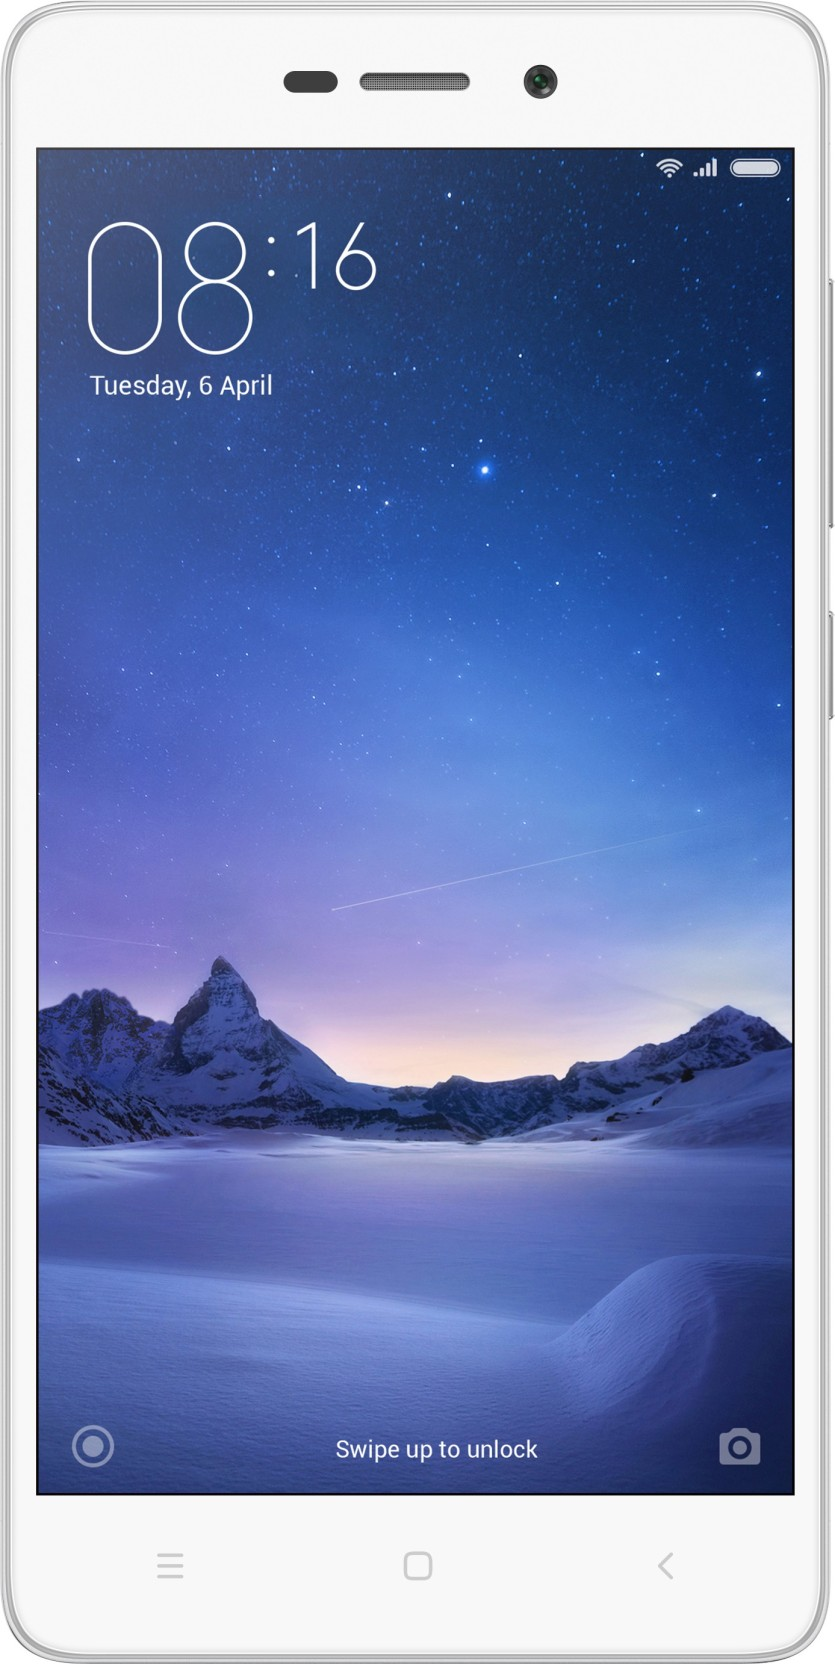 Redmi 3s Silver 16 Gb Online At Best Price Only On Xiaomi Pro 3 32 Rom Global Gold Home